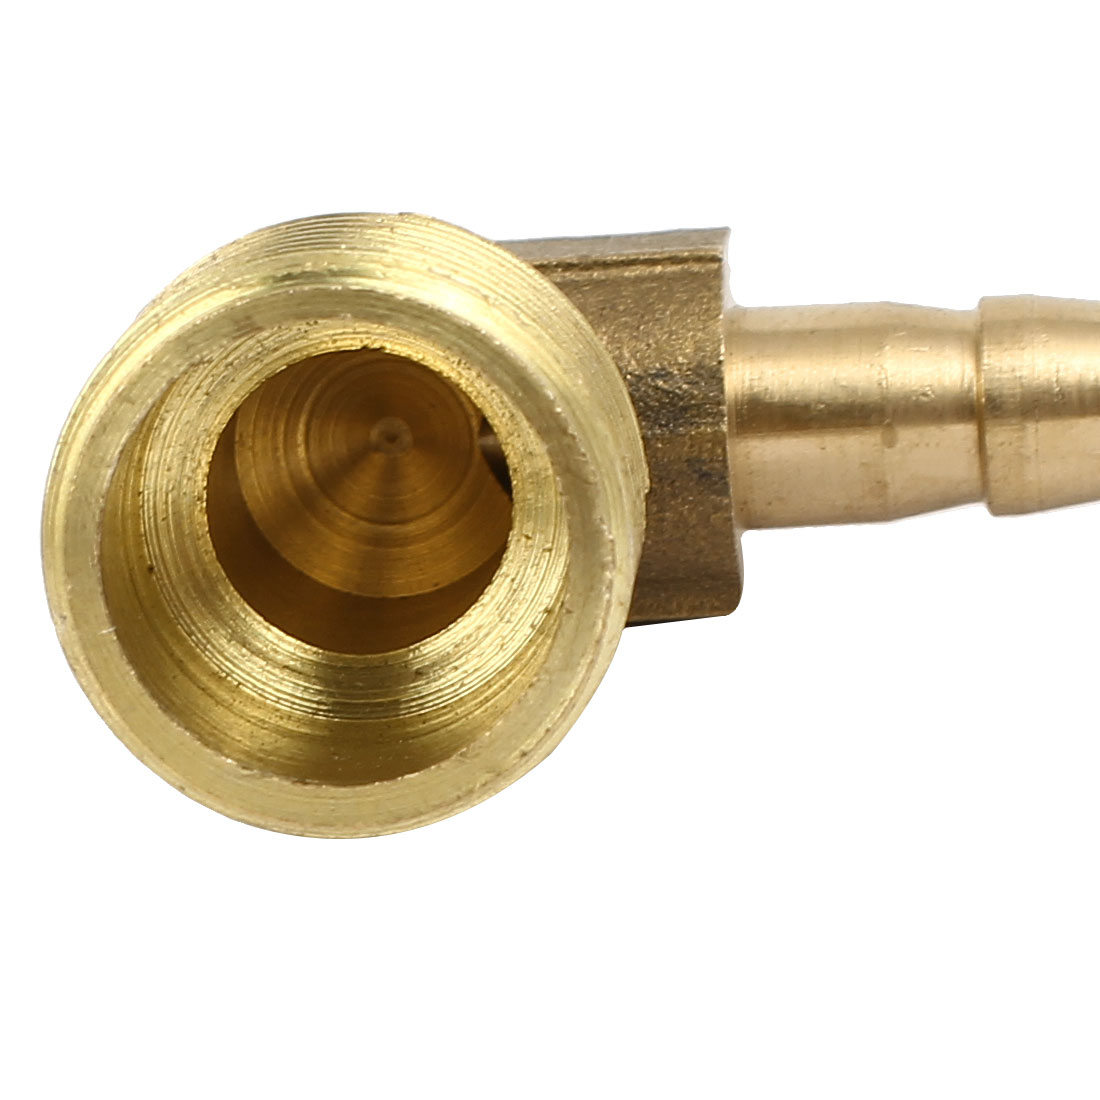 3/8BSP Male Thread 6mm Dia Brass Hose Barb Fittings Couplers Connectors 4pcs - image 2 of 4